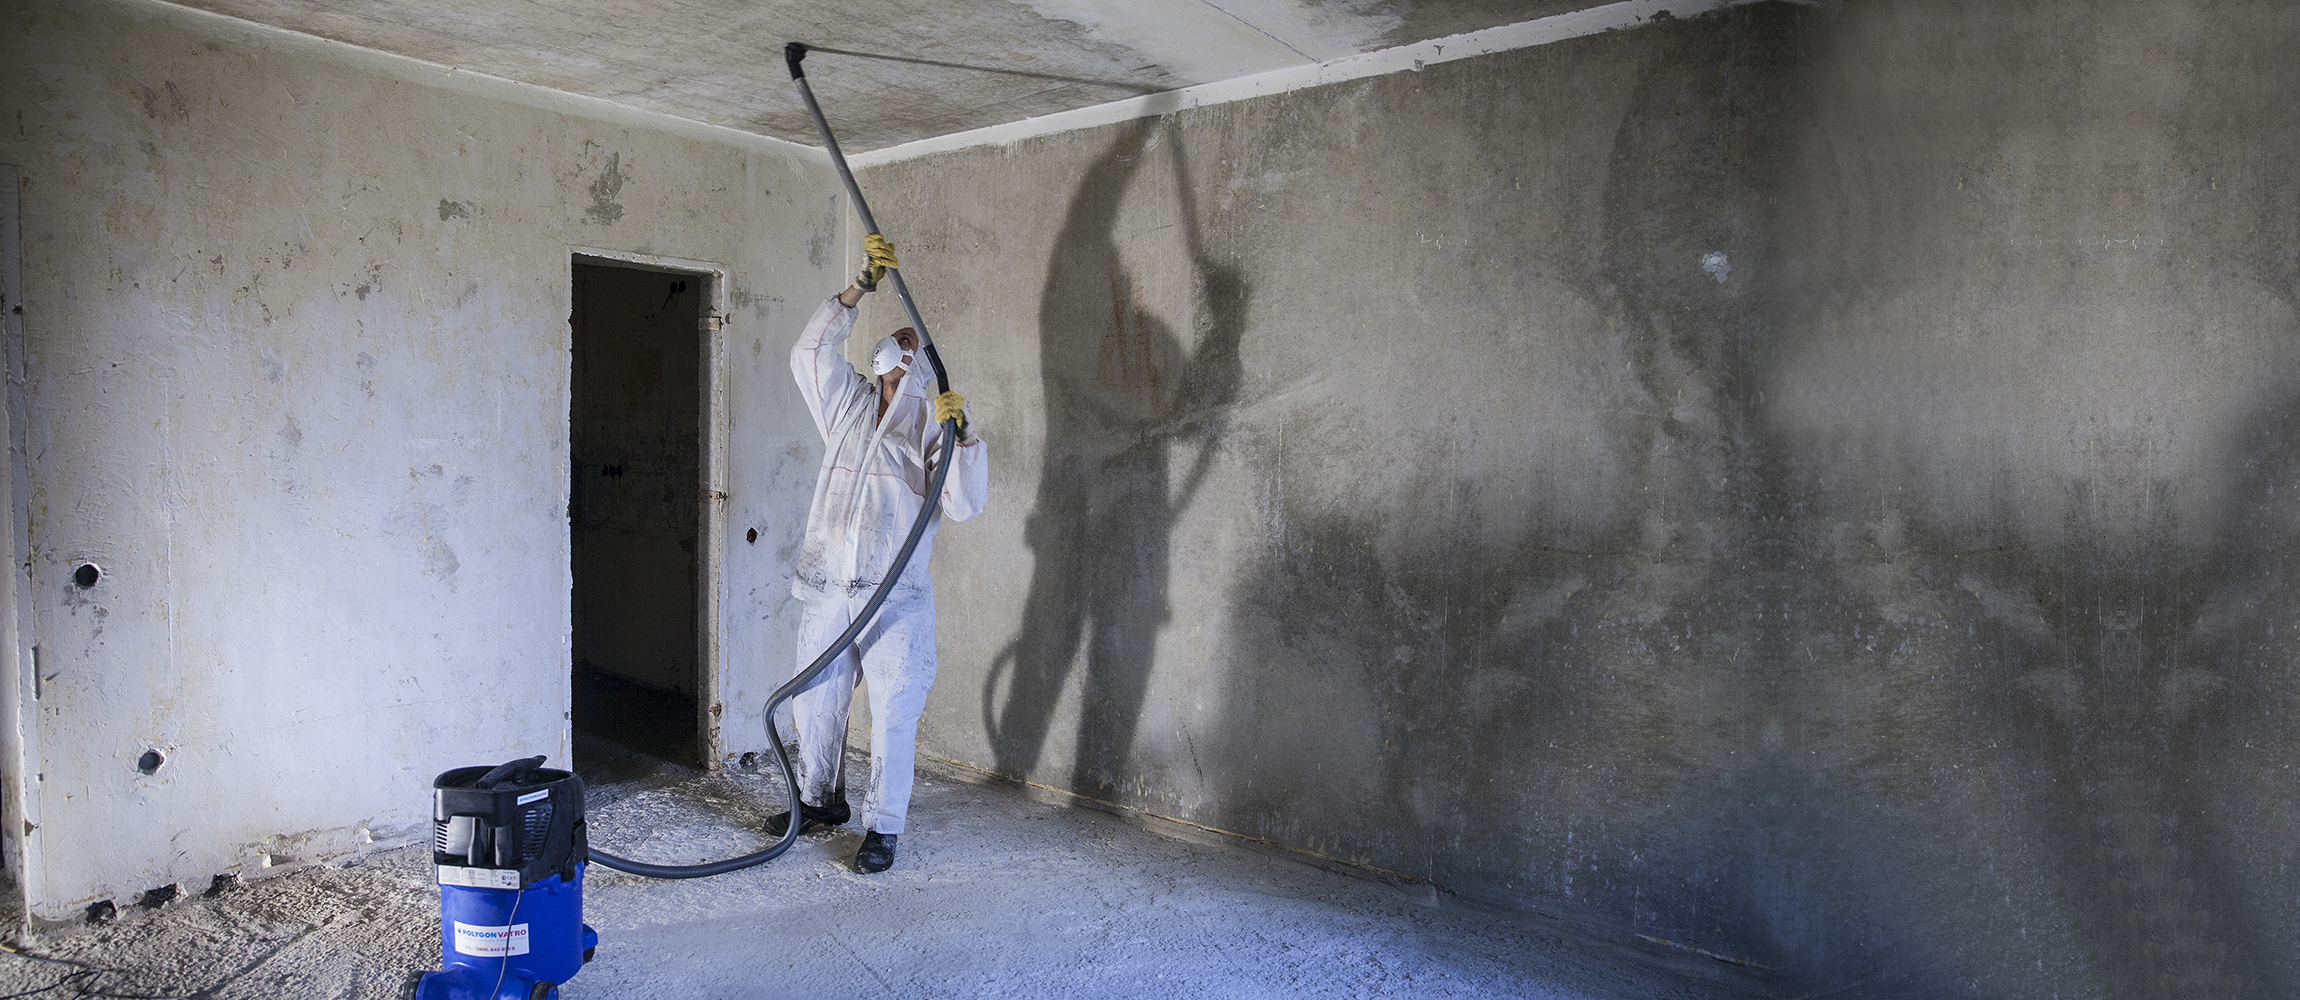 Could Toxic Mold Cause Mental Health Troubles?